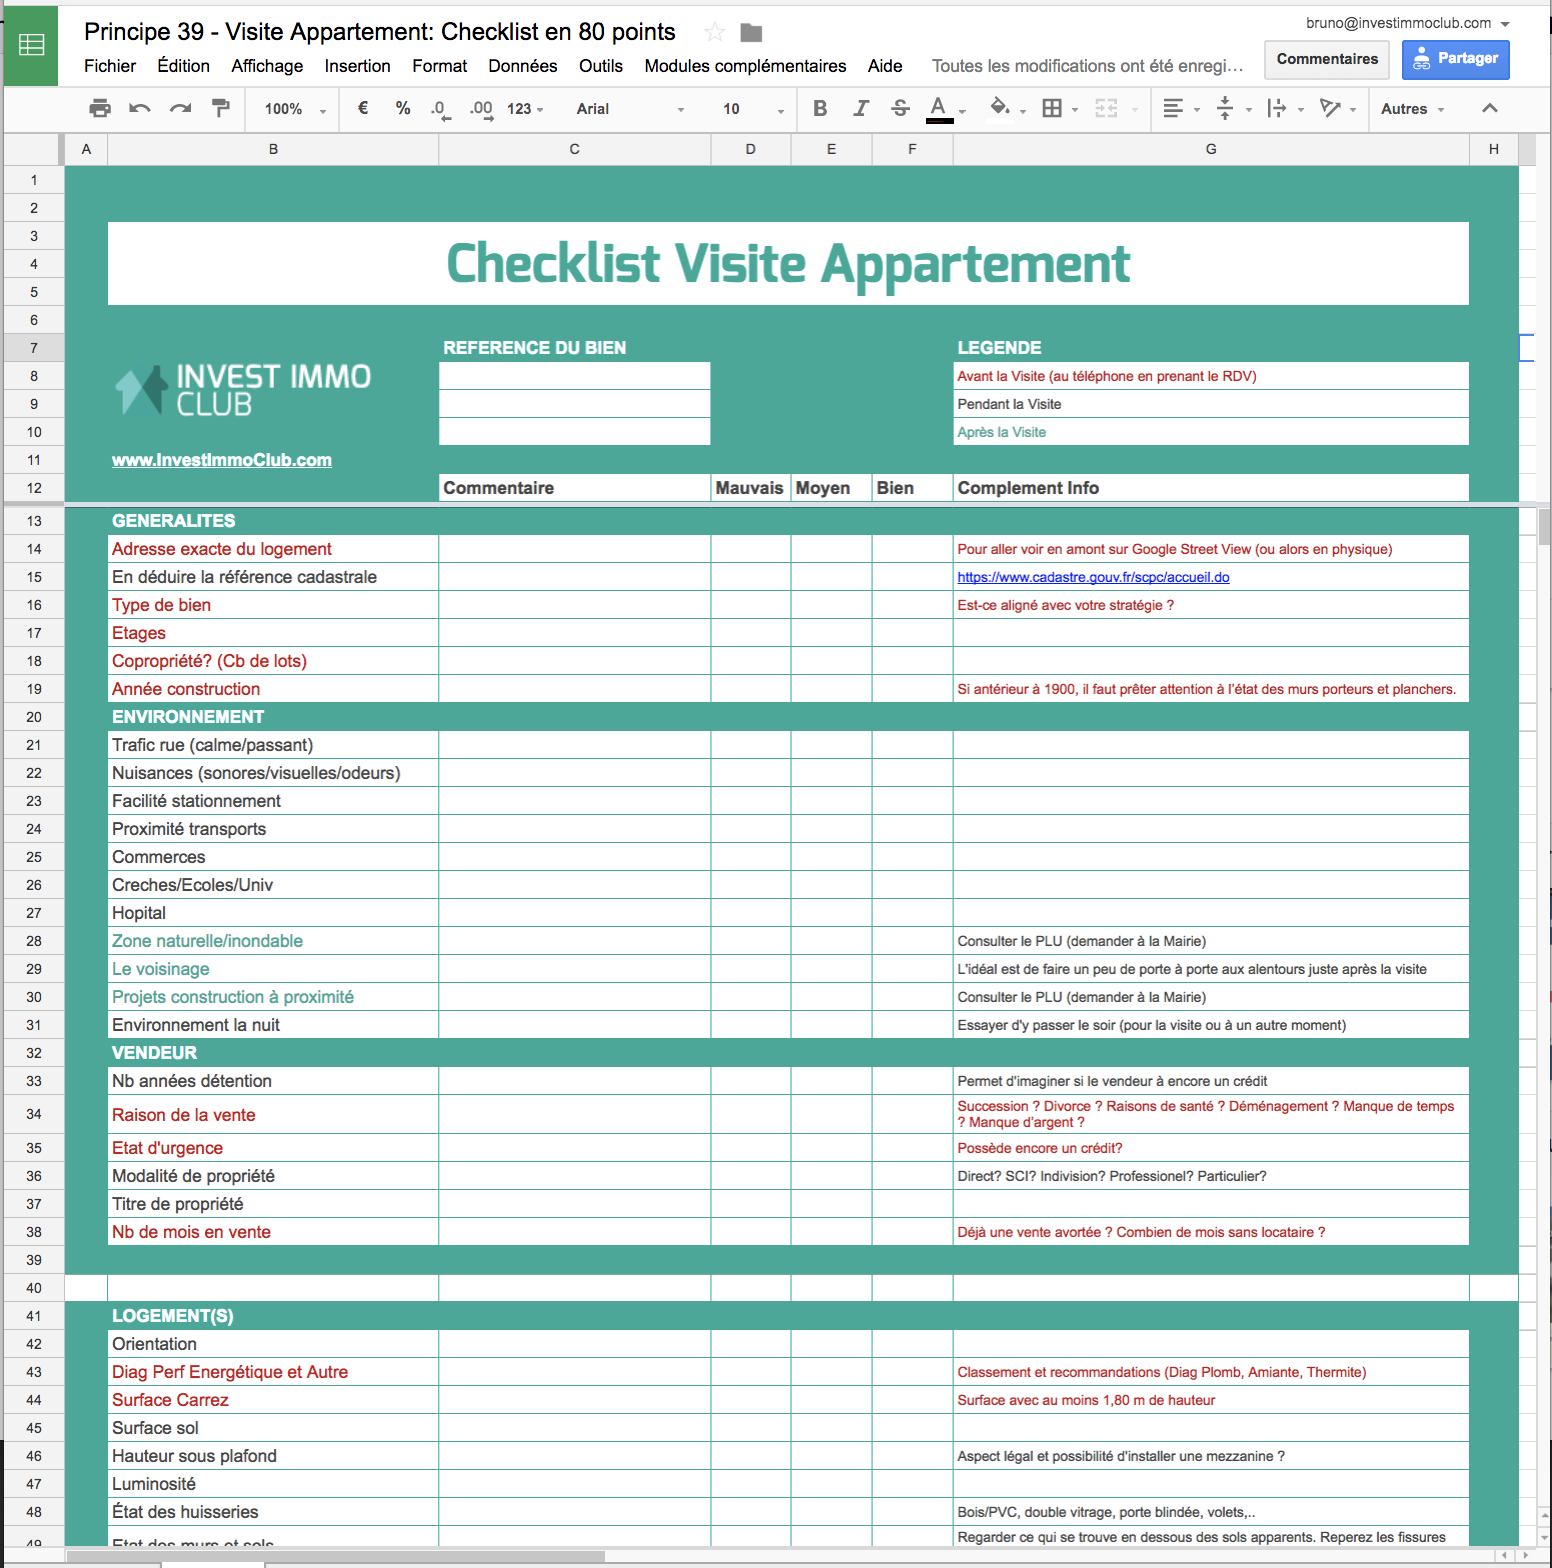 107 Principes Immobiliers - Visite Appartement Checklist